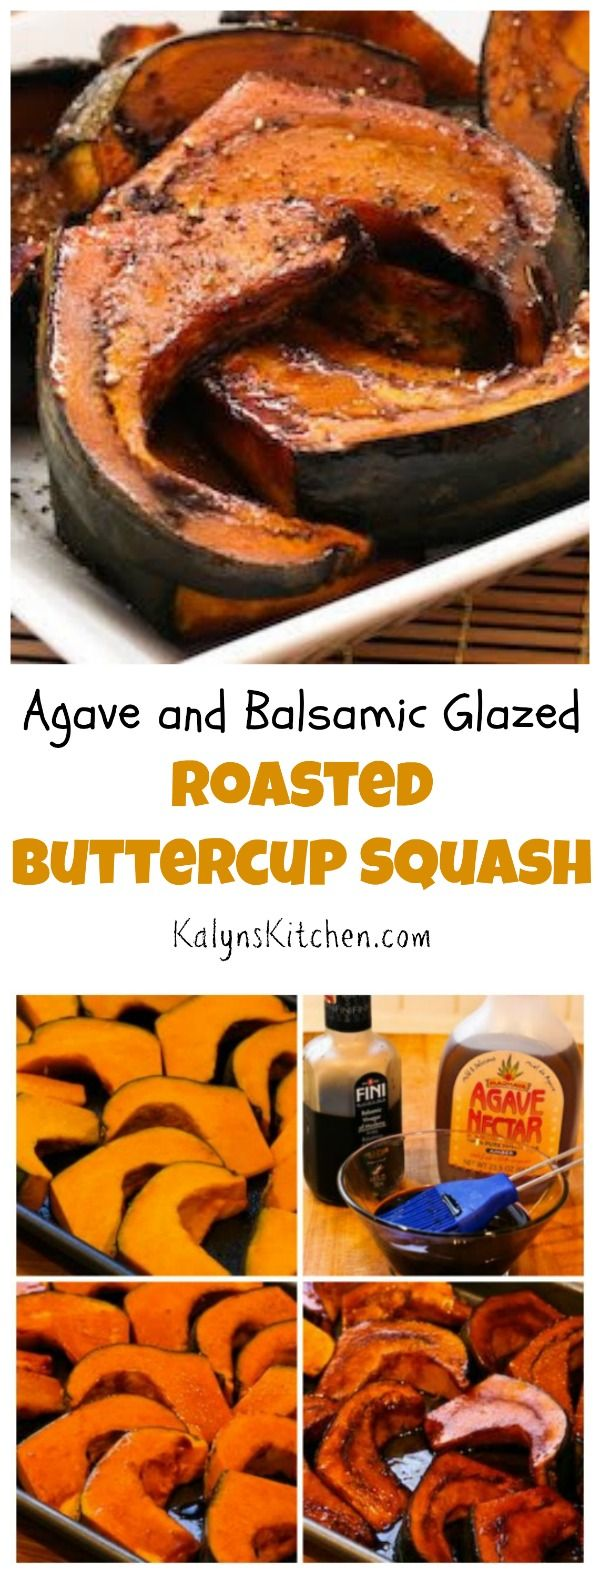 Easy Roasted Buttercup Squash With Balsamic Glaze Recipe With Images Winter Squash Recipes Balsamic Recipe Buttercup Squash